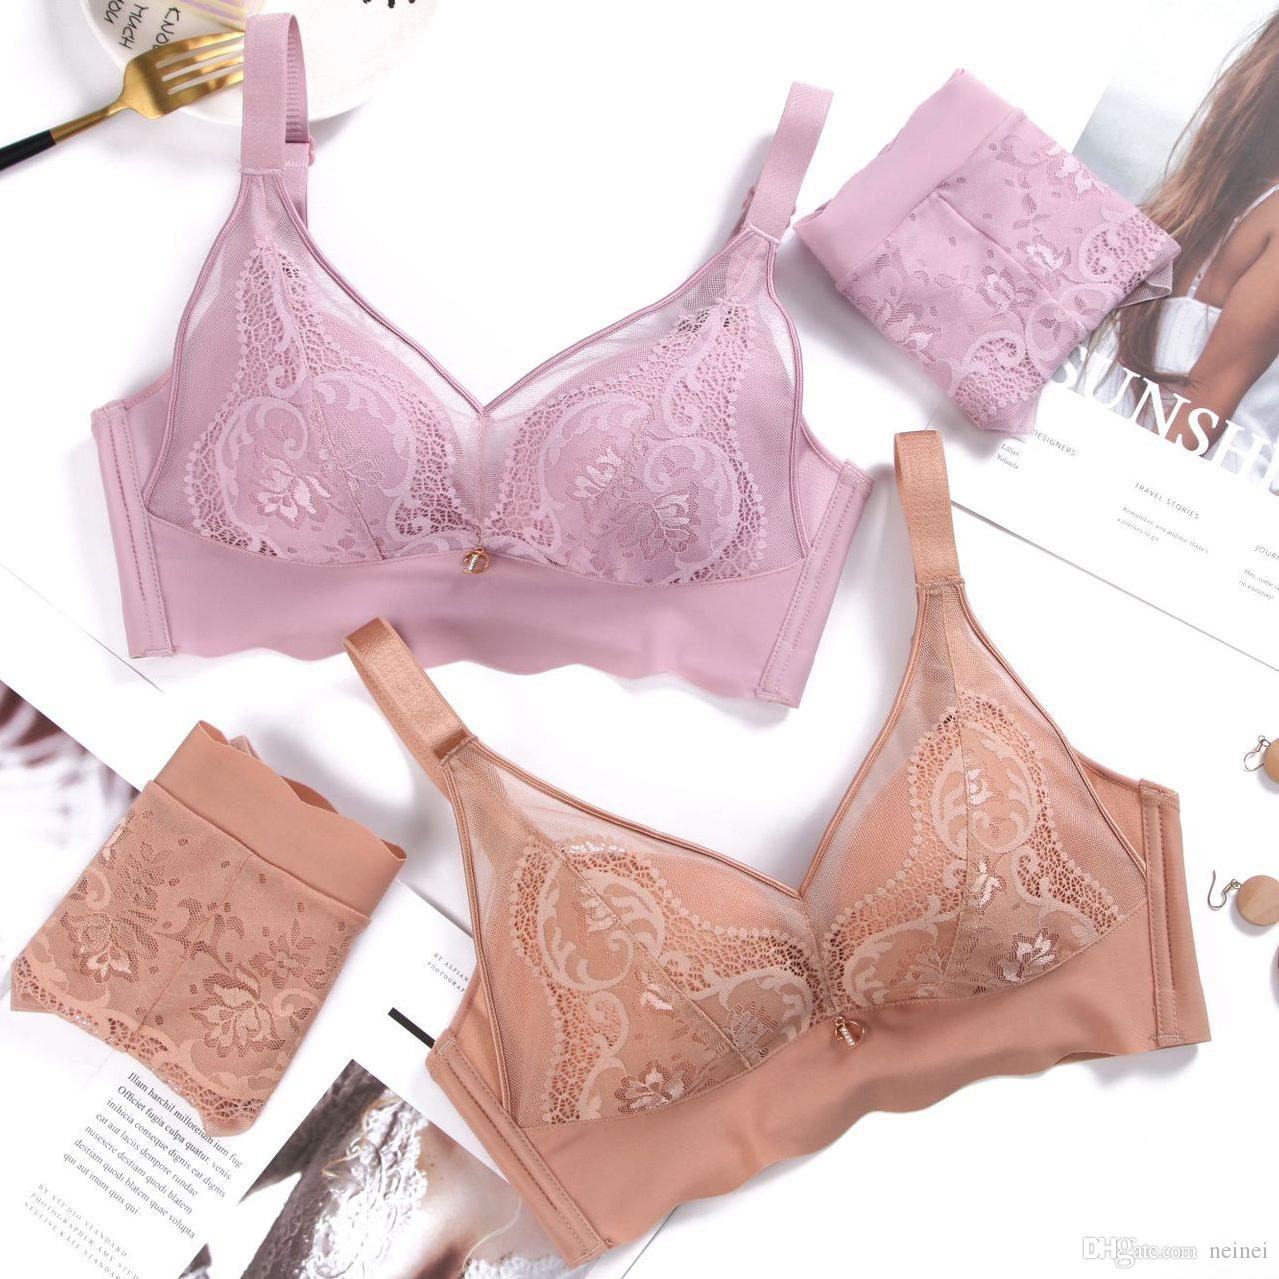 d92f2d69333 2019 34 90 AB Cup Seamless Push Up Thin Lace Underwear Set 2018 Autumn New  Bra And Panty Sets Sexy Lingerie Sets Bralette Bra Brief From Neinei